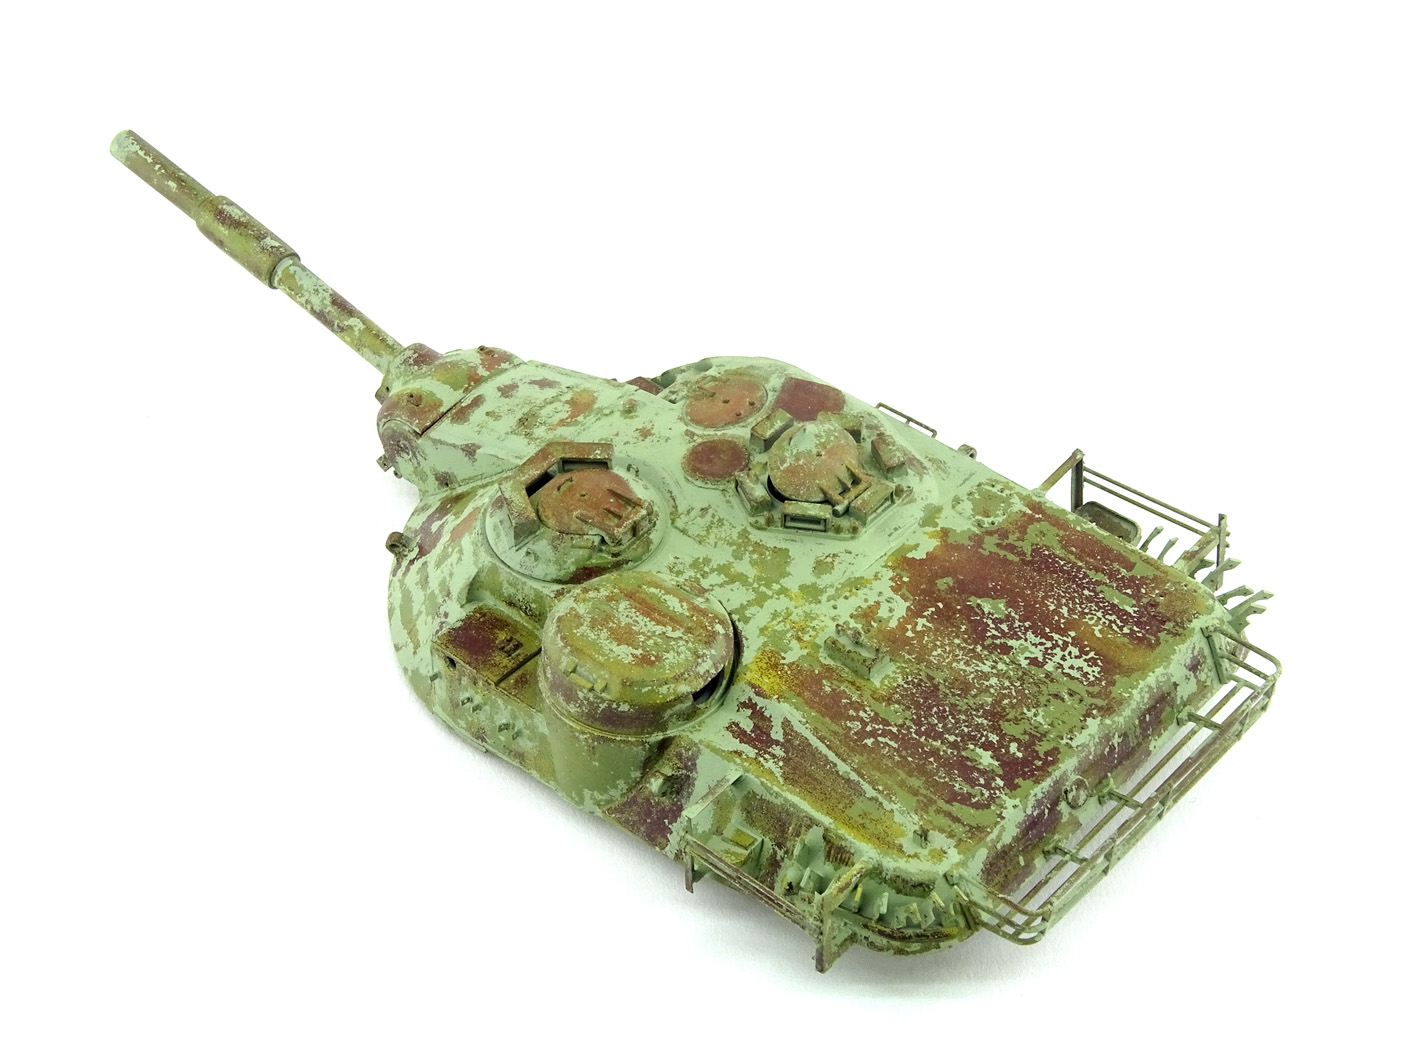 MBT-70 (Kpz.70) [Dragon gamme Black Label] – 1/35 (Montage en cours) Mbt-7074